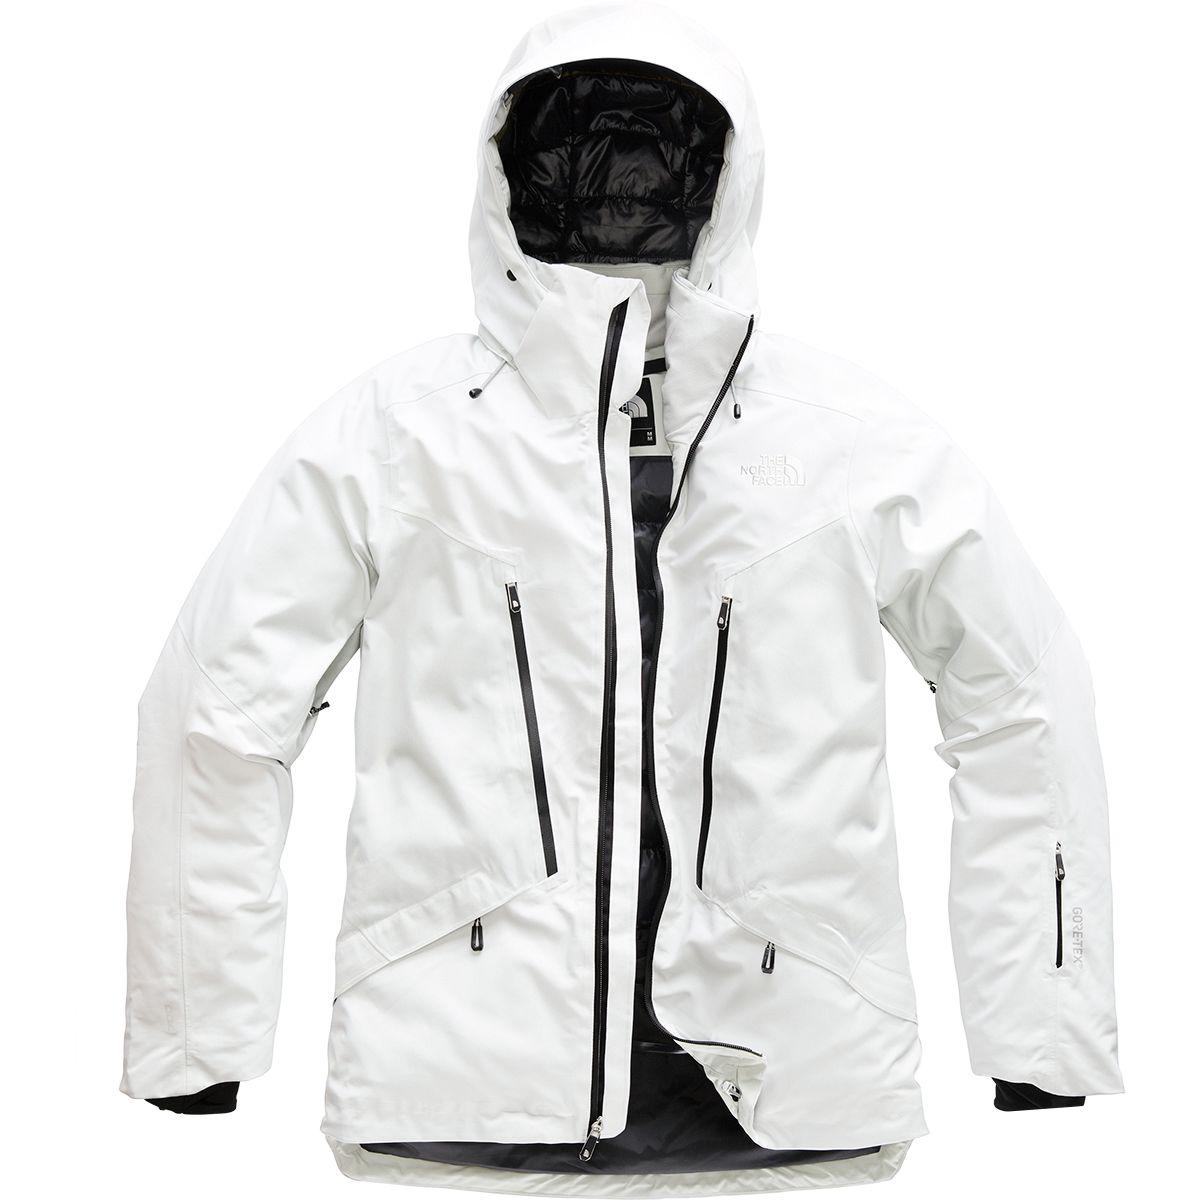 Lyst - The North Face Diameter Down Hybrid Hooded Jacket in Gray for Men 67ac340ec